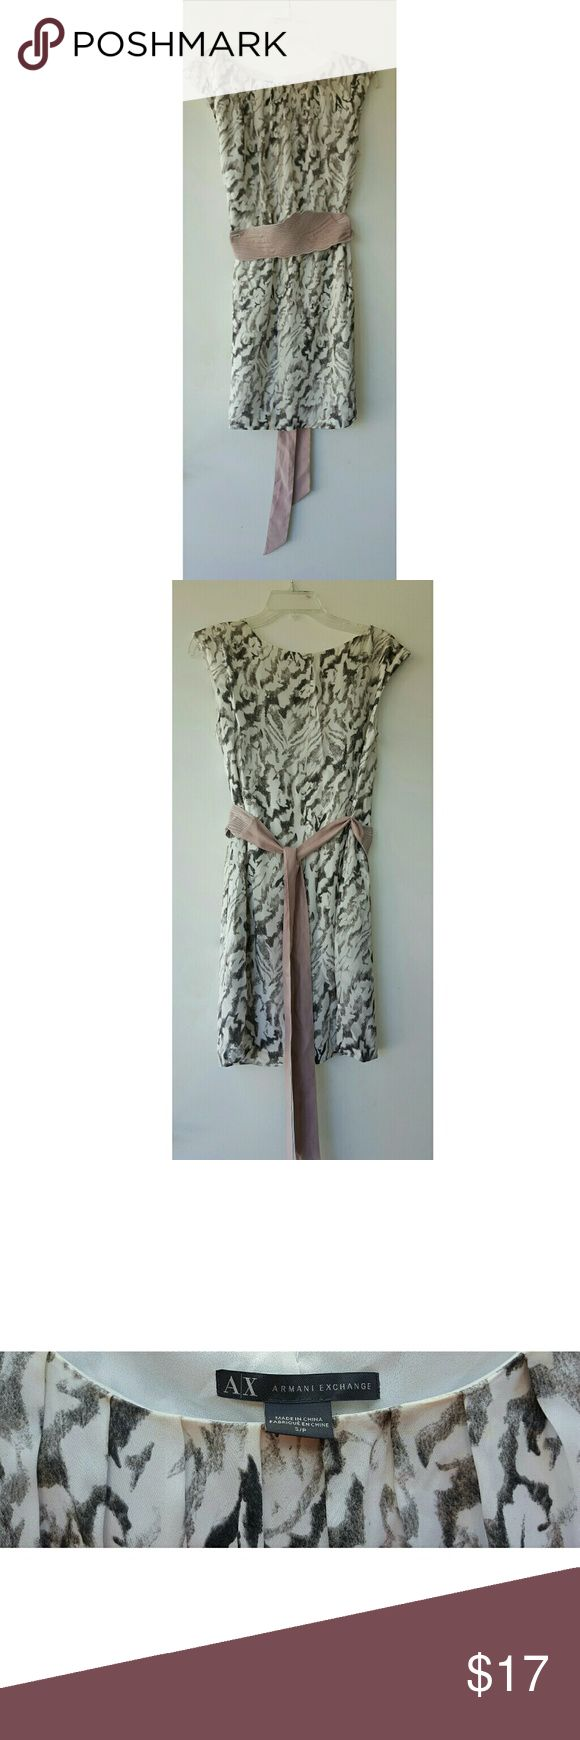 ARMANI EXHANGE Silk Dress Size Small Beautiful Animal Print Armani Exchange Silk Shift Dress Fully Lined with Pink Obi Belt  Can be styled with Gray Heels, Flat Sandals  or Wedges  Size Small  Only worn twice Armani Exchange Dresses Mini